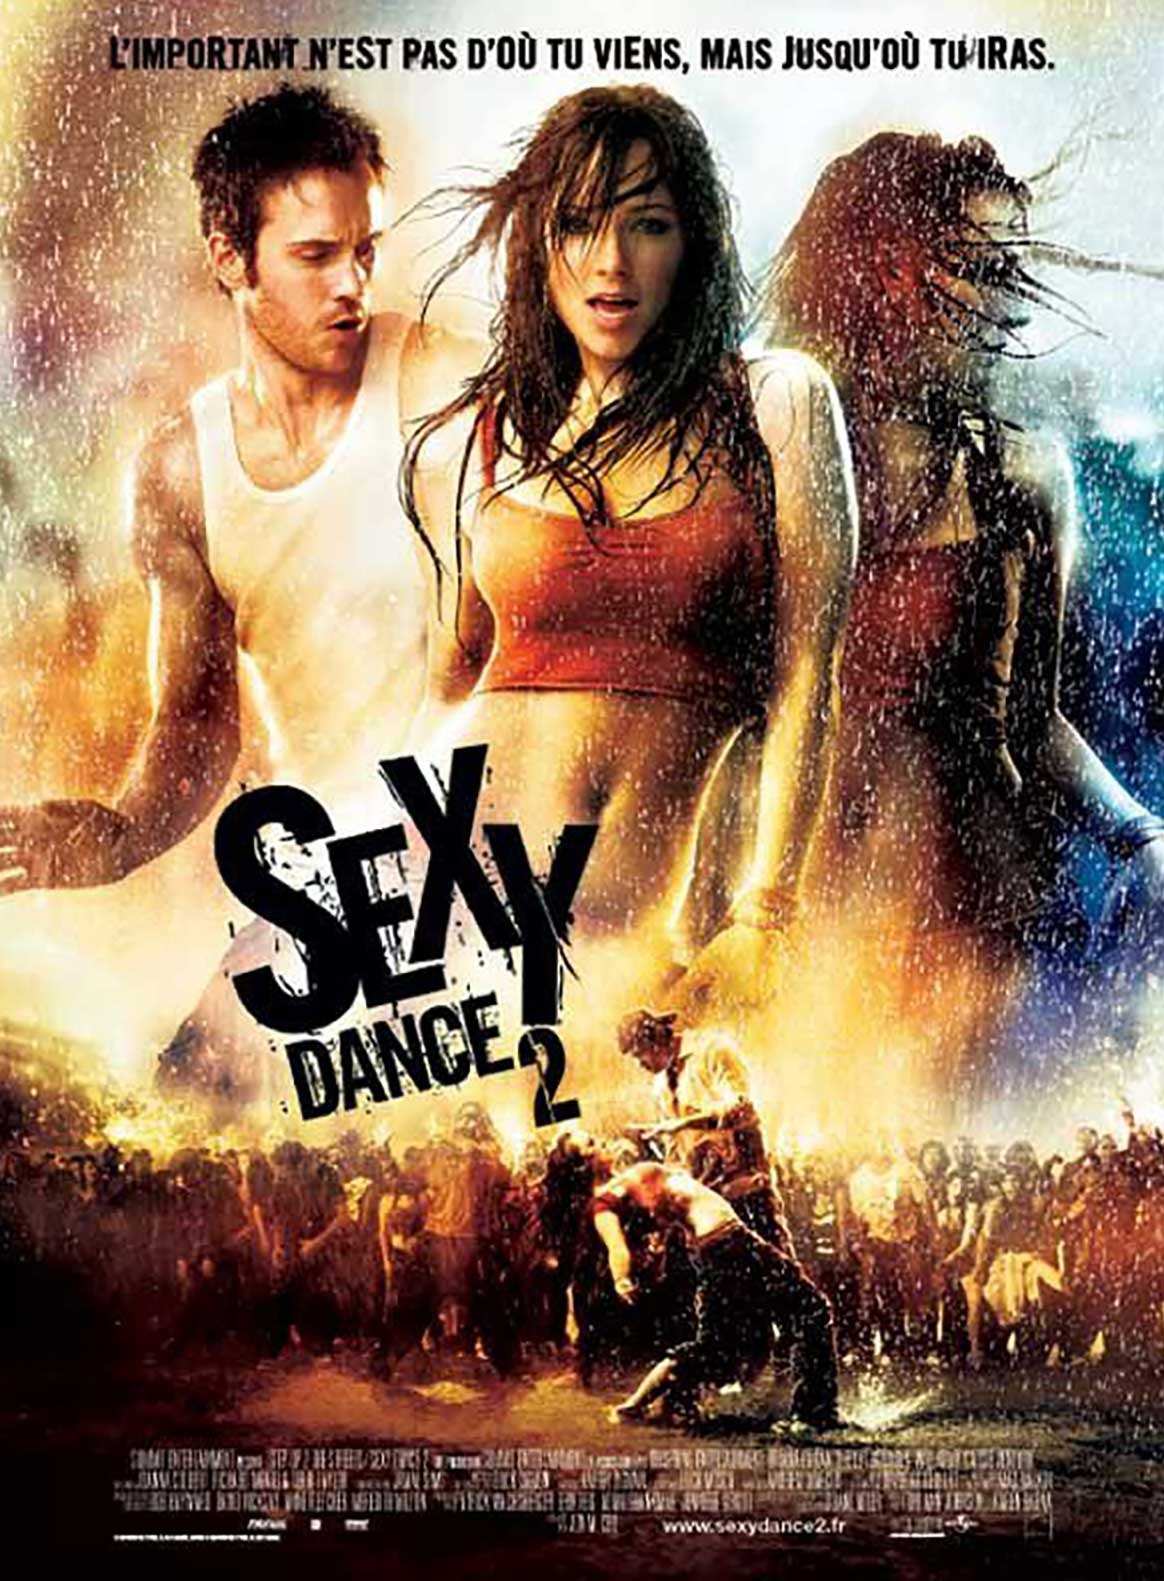 Affiche Poster sexy dance 2 step up streets disney touchstone